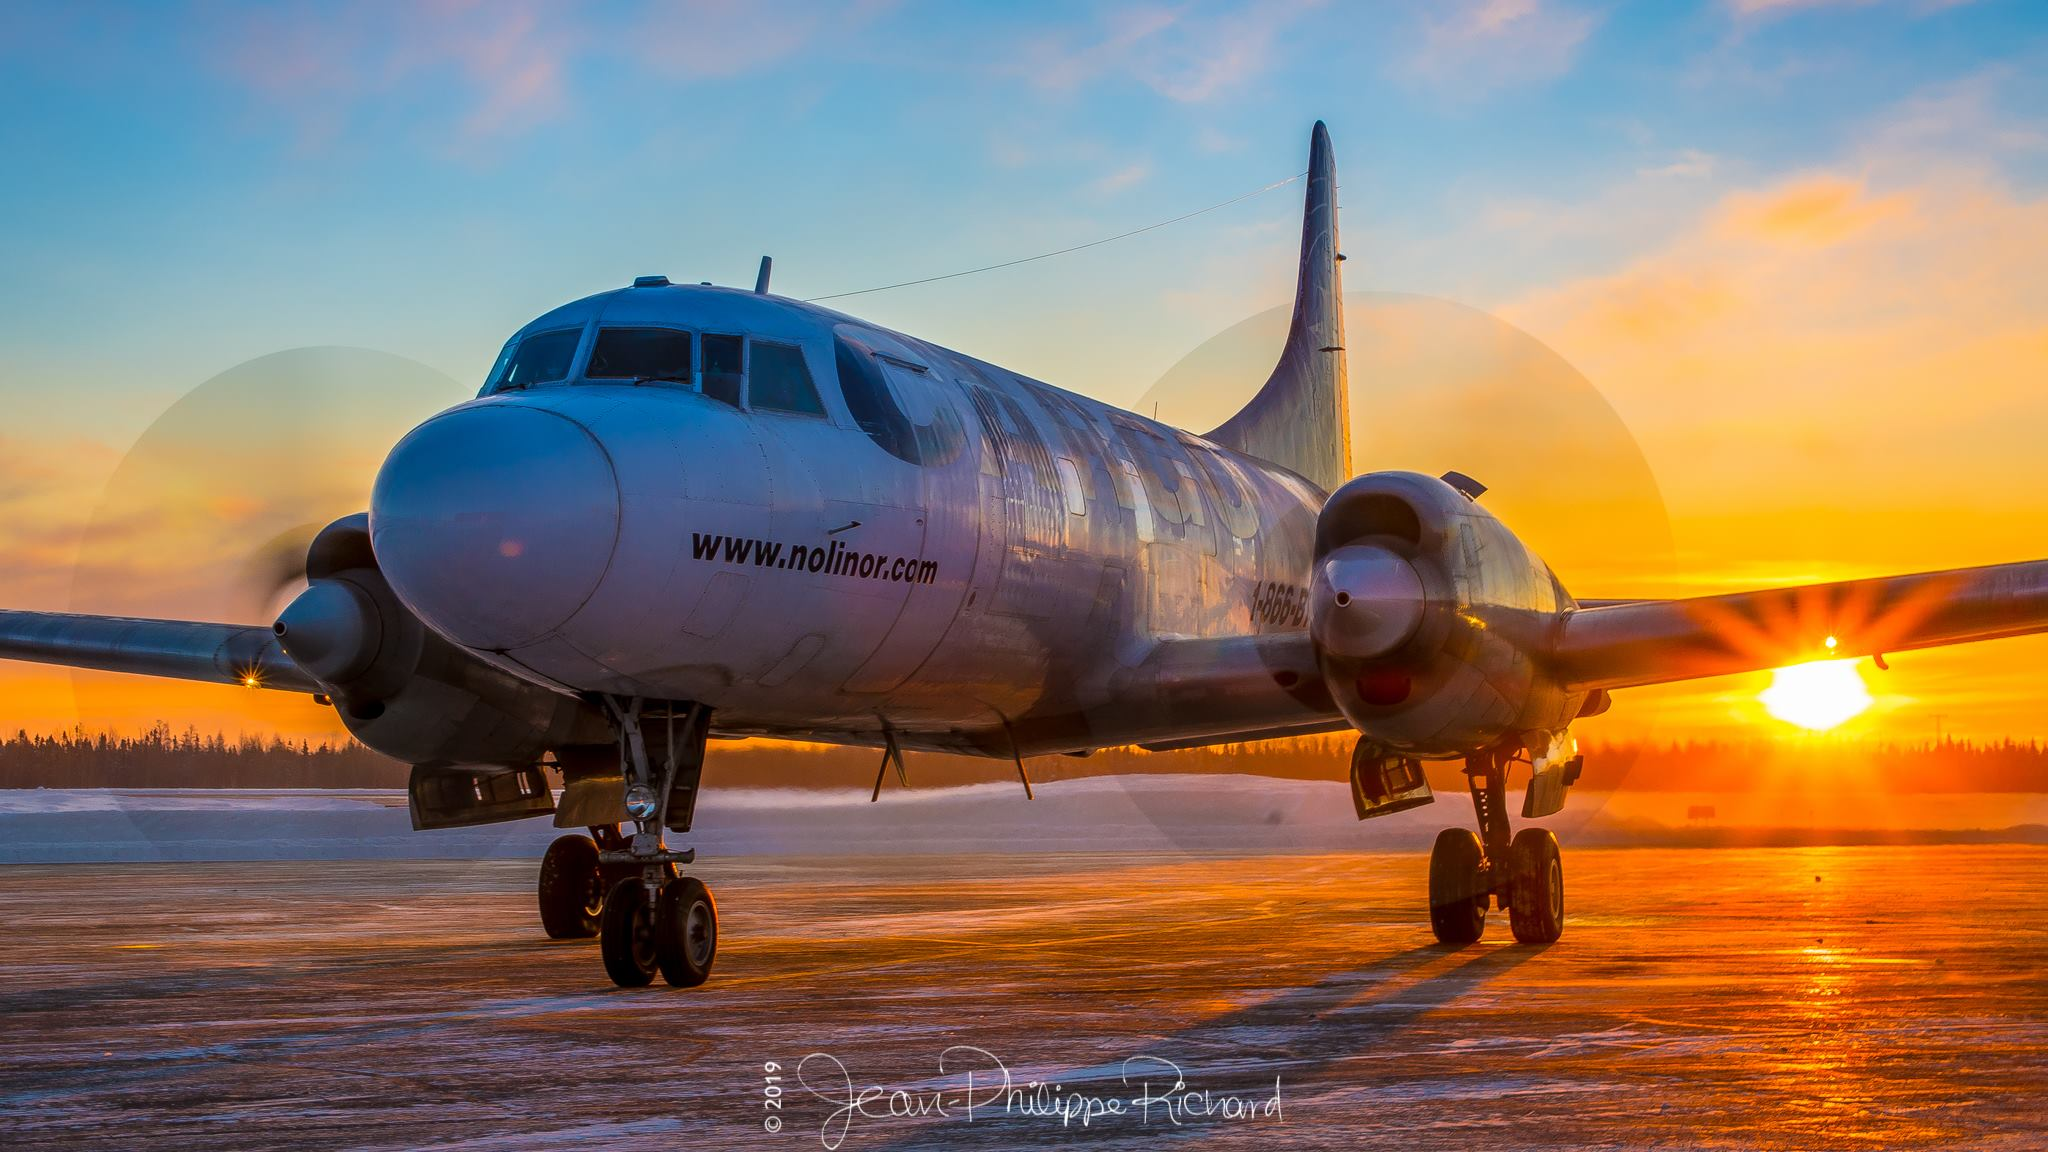 Congratulations goes to Jean-Philippe Richard (Instagram user @jprichard89), his shot of this Nolinor Aviation Convair 580 during golden hour was our most-liked weekly photo contest winner of 2019!